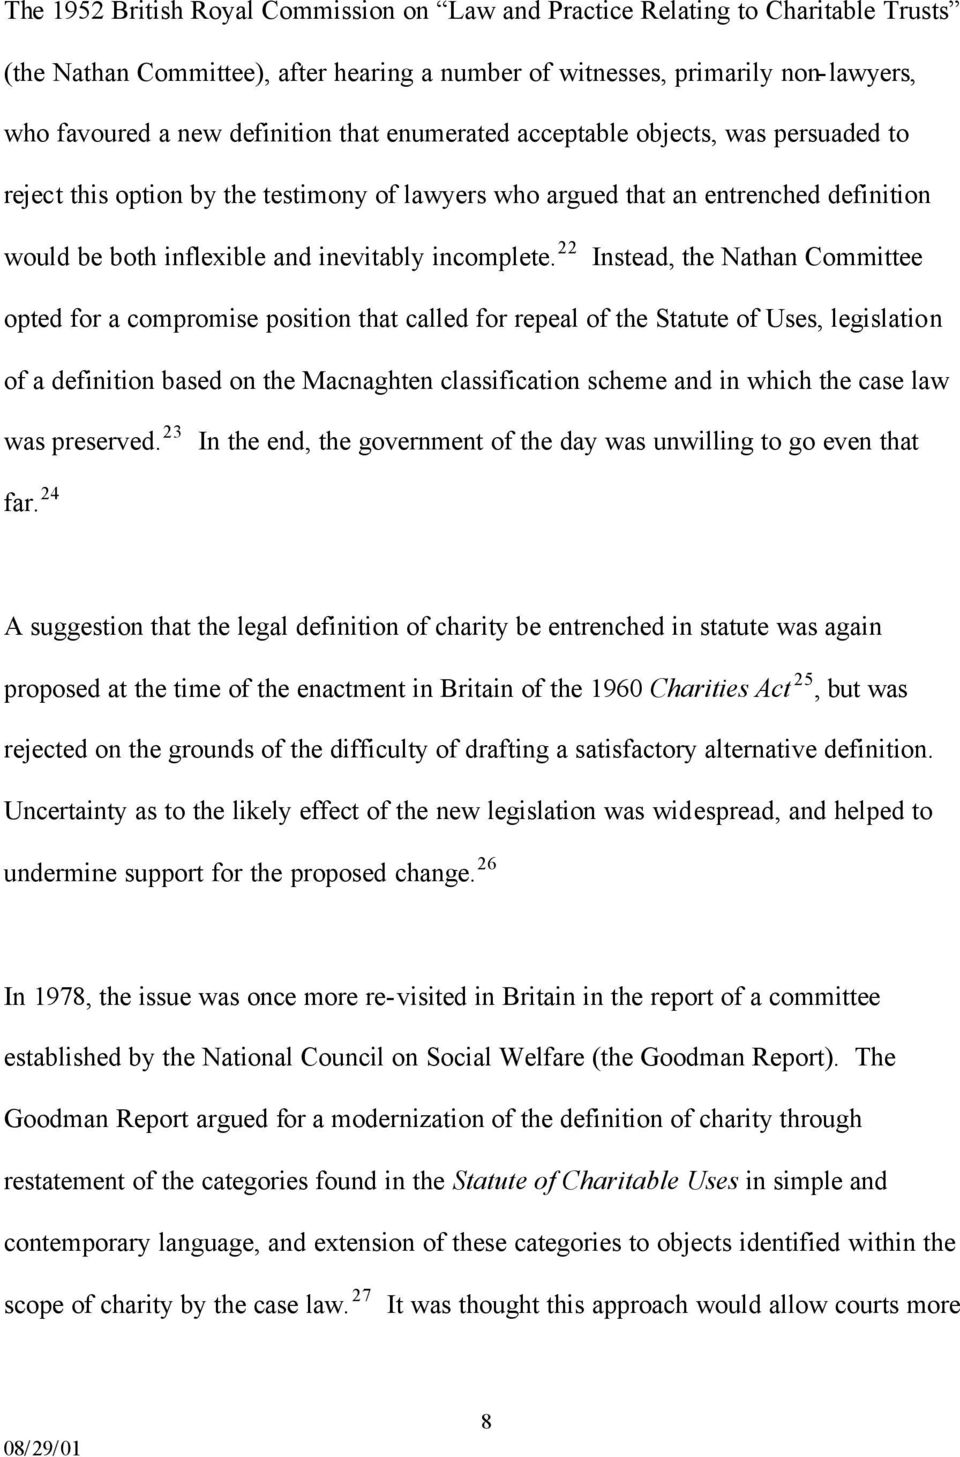 22 Instead, the Nathan Committee opted for a compromise position that called for repeal of the Statute of Uses, legislation of a definition based on the Macnaghten classification scheme and in which